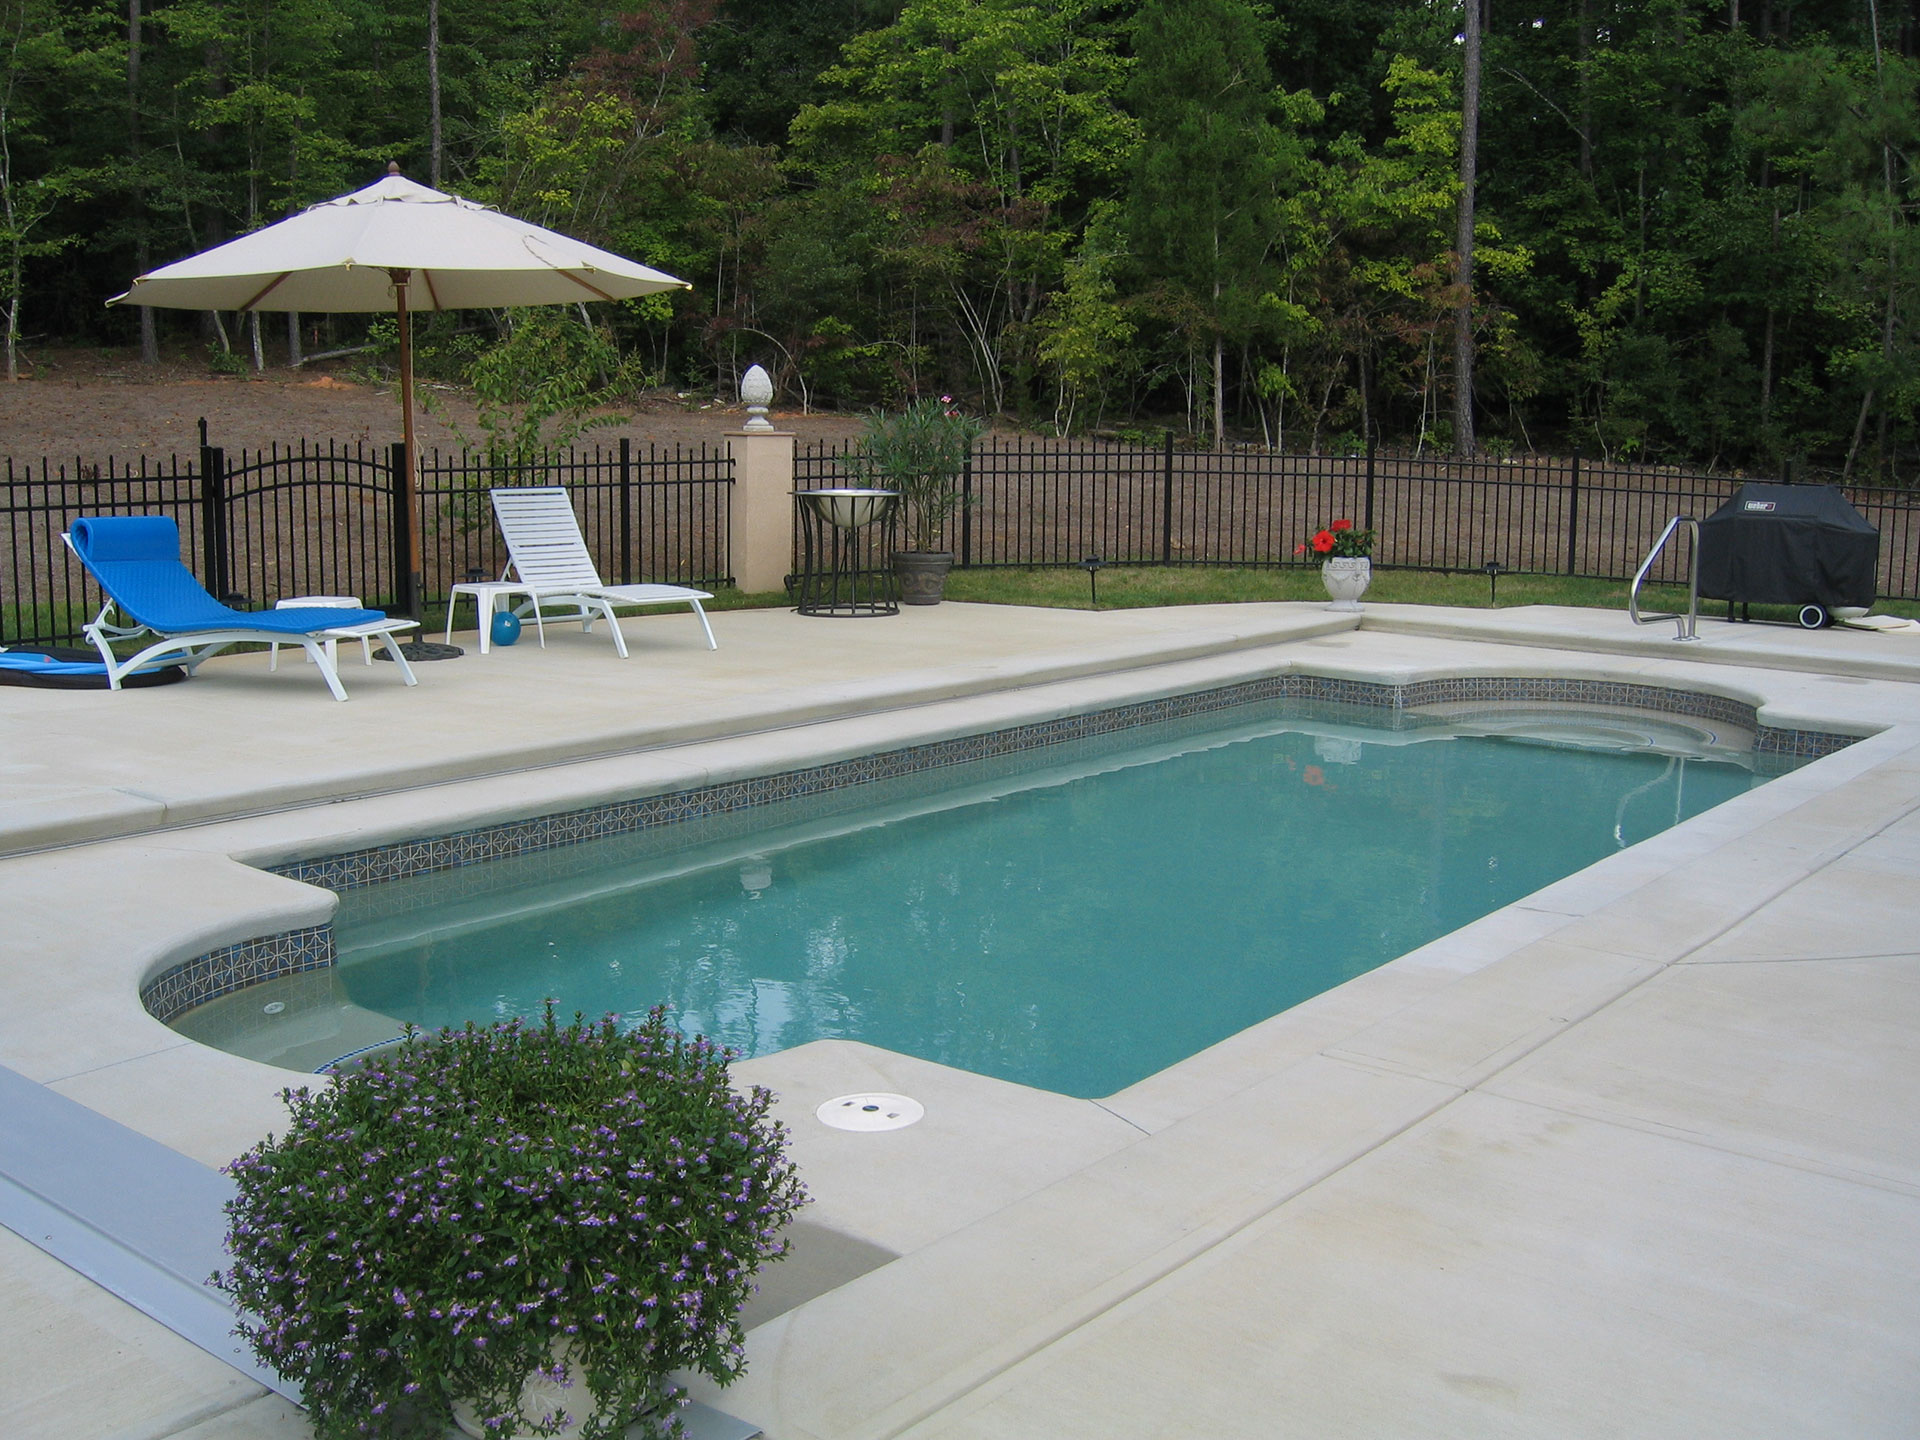 Raleigh fiberglass pools in ground above designs for Above ground fiberglass pools